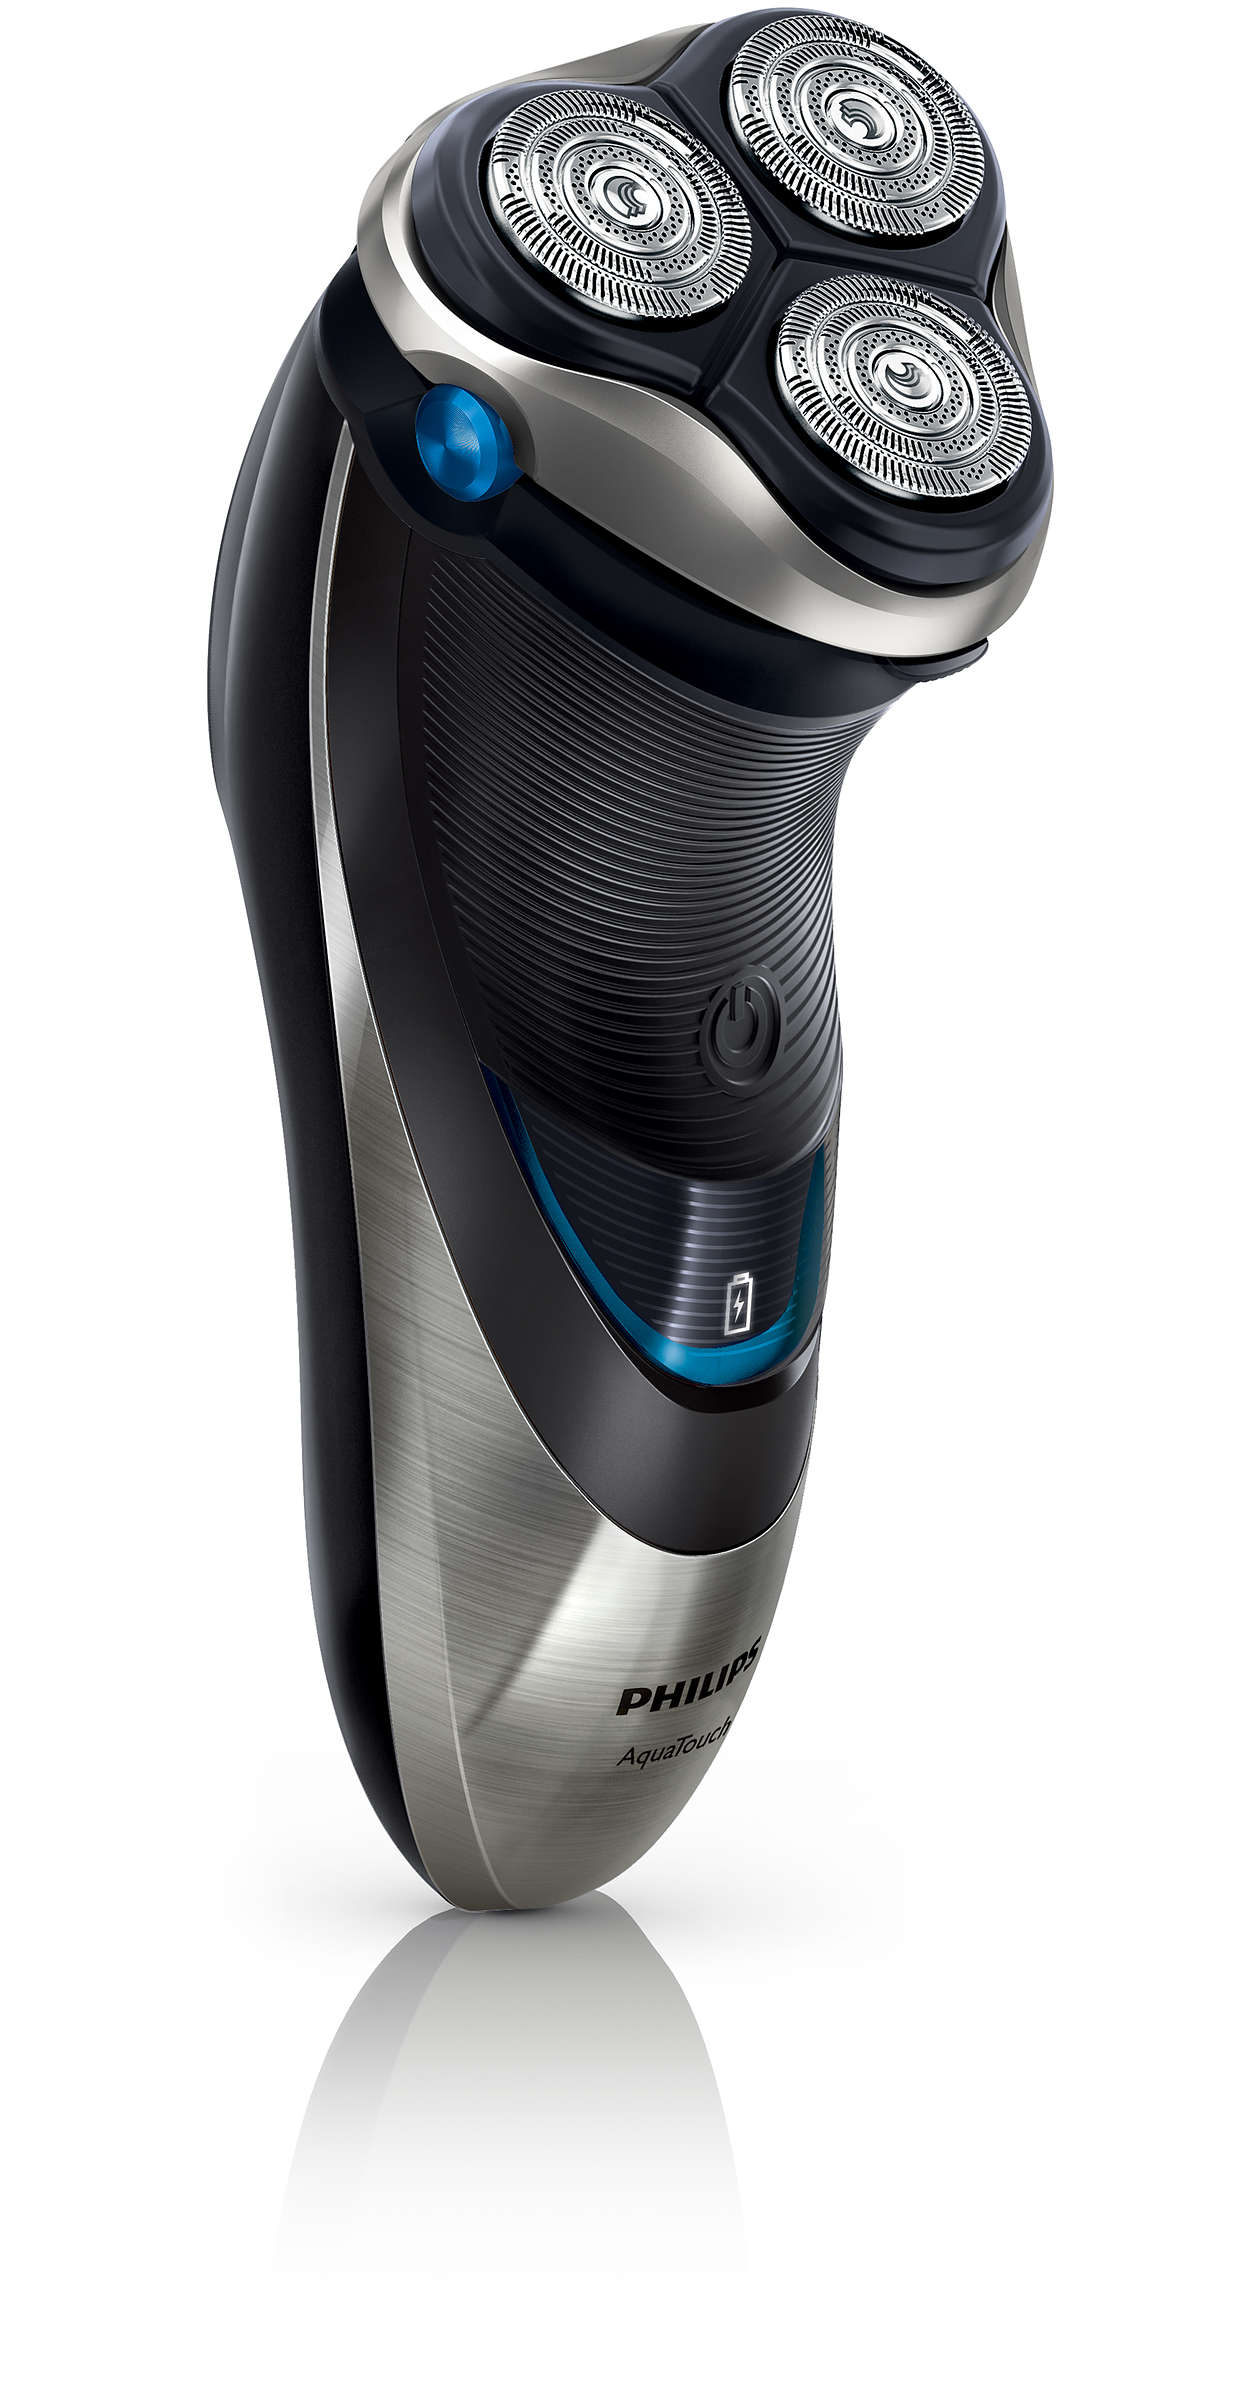 Series 5000 - TripleTrack shaving system